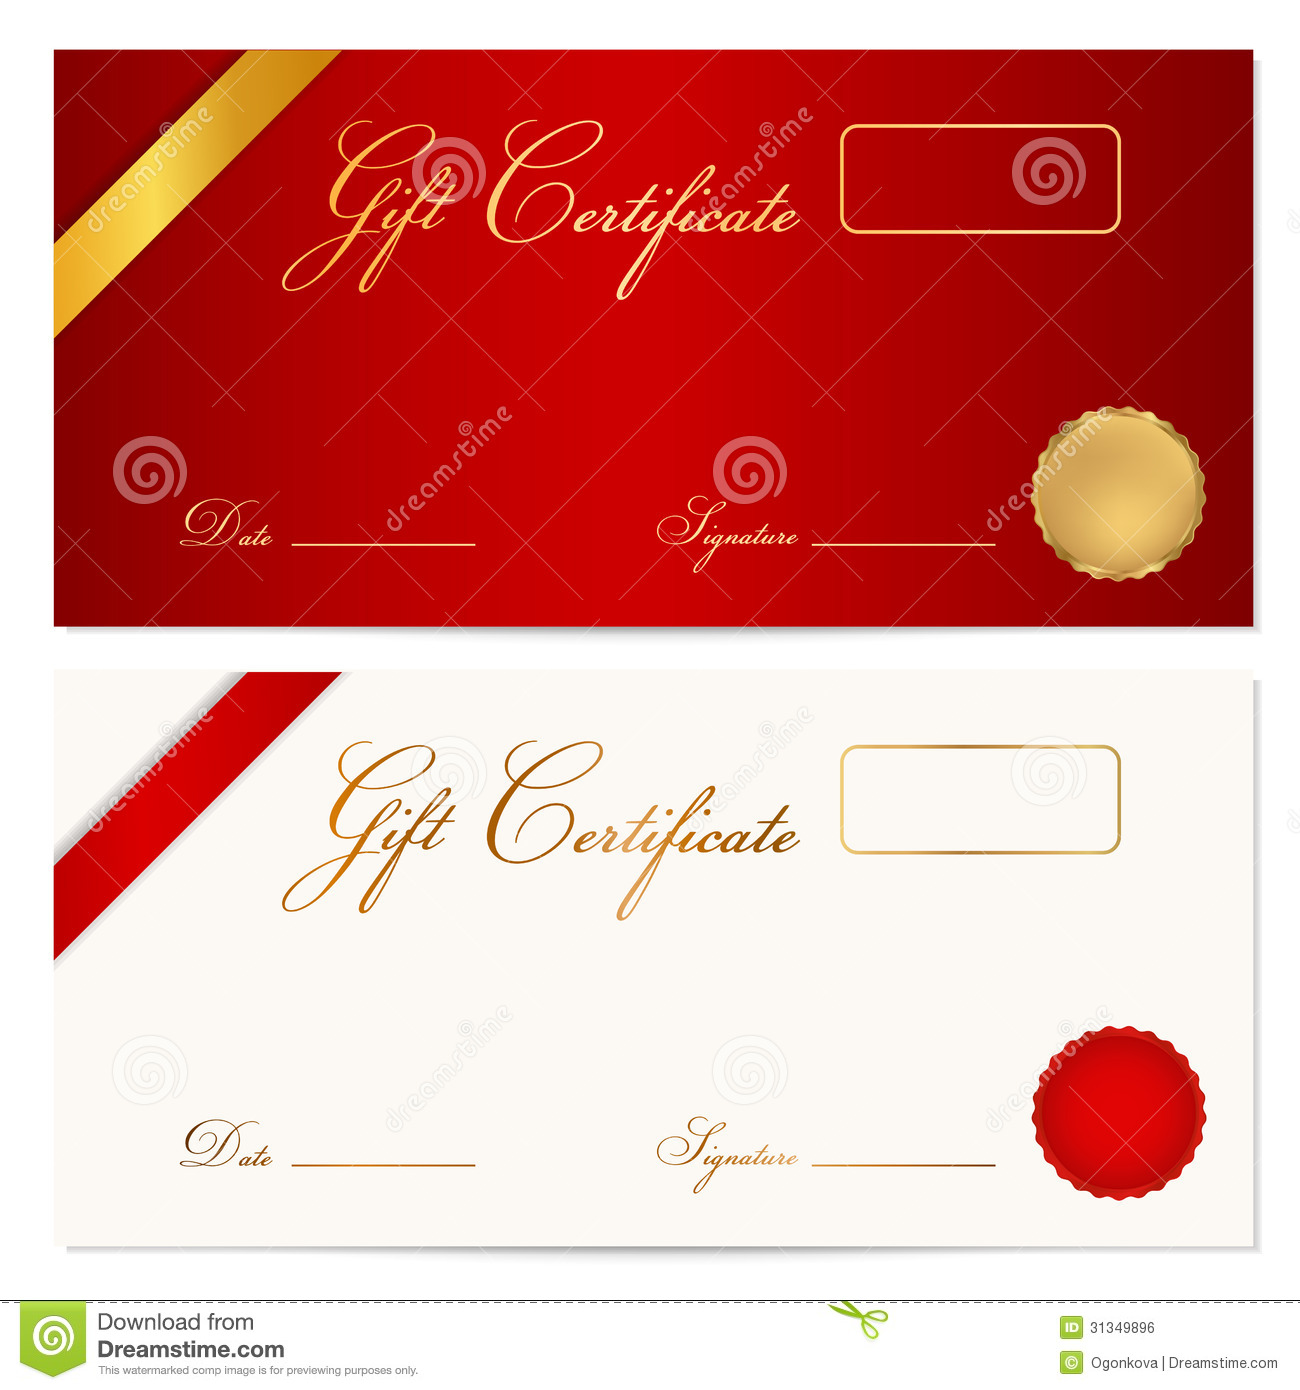 Vouchers Templates anniversary gift free gift coupon templates – Voucher Template Free